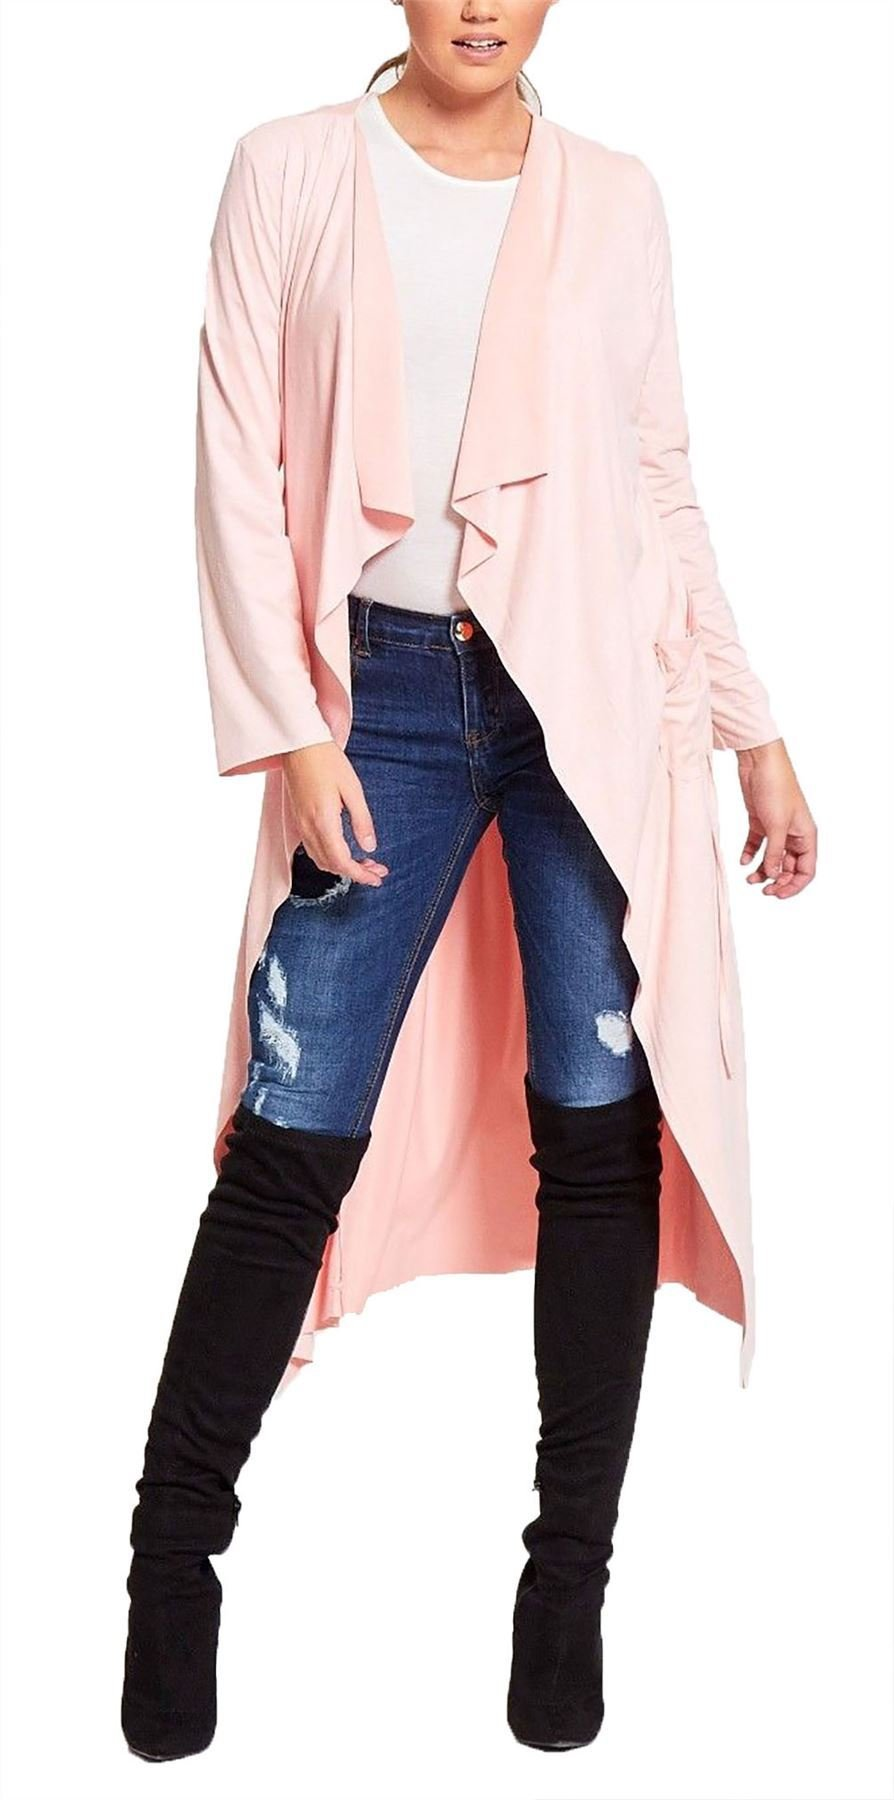 Ladies Waterfall Suede Cardigan Womens Modest Belted Draped Open Longline Jacket#(Baby Pink Suede Cardigan#US 6-8#Womens)